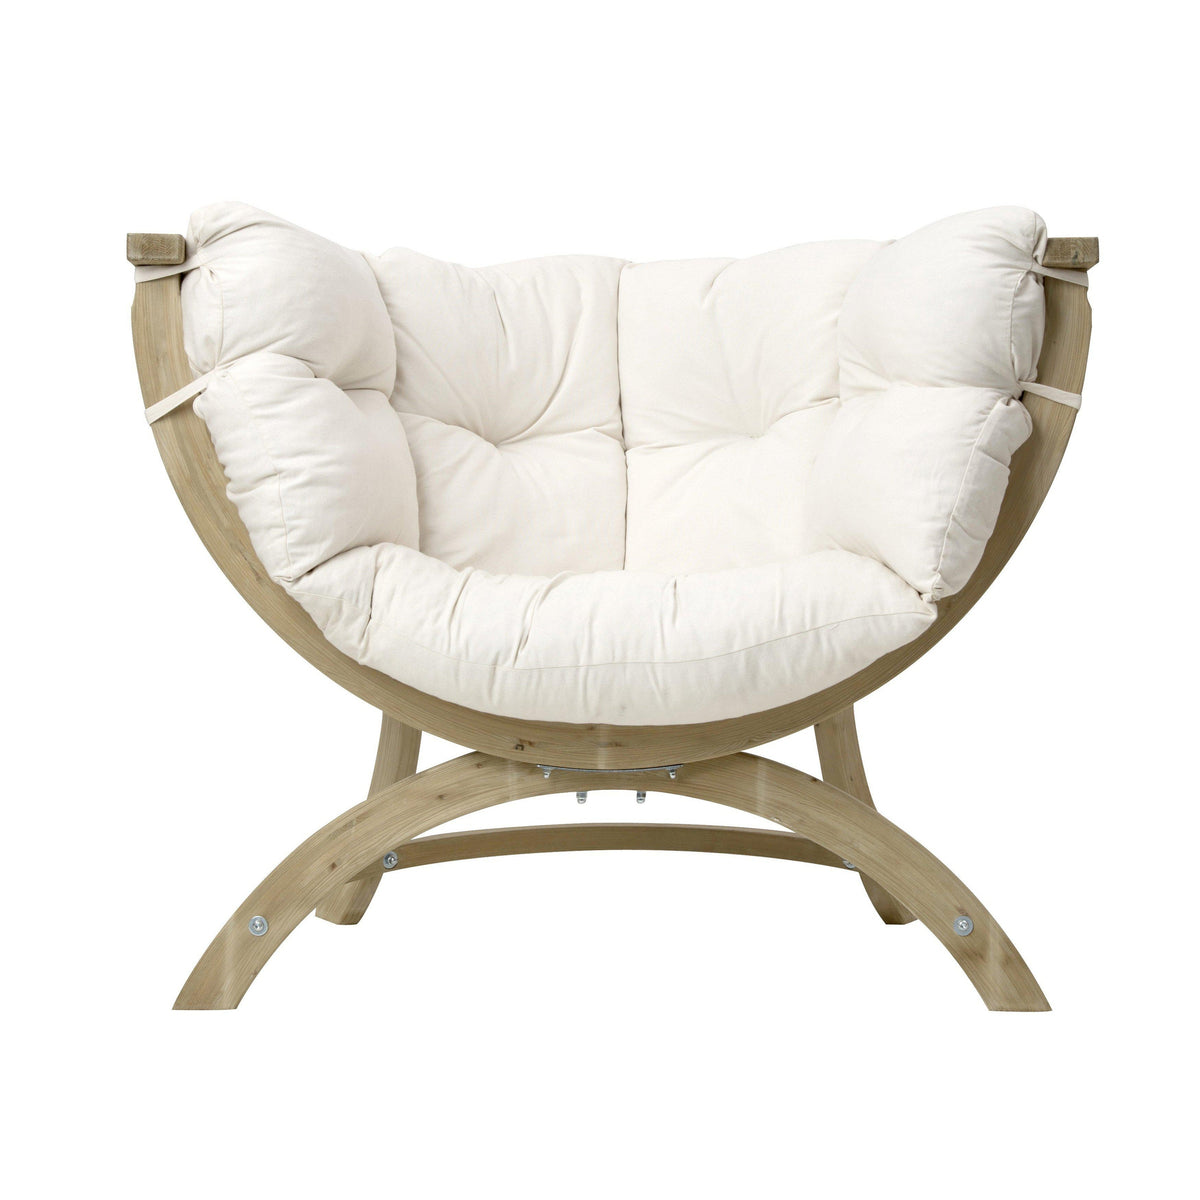 Siena UNO Chair, Natural, from Byer of Maine